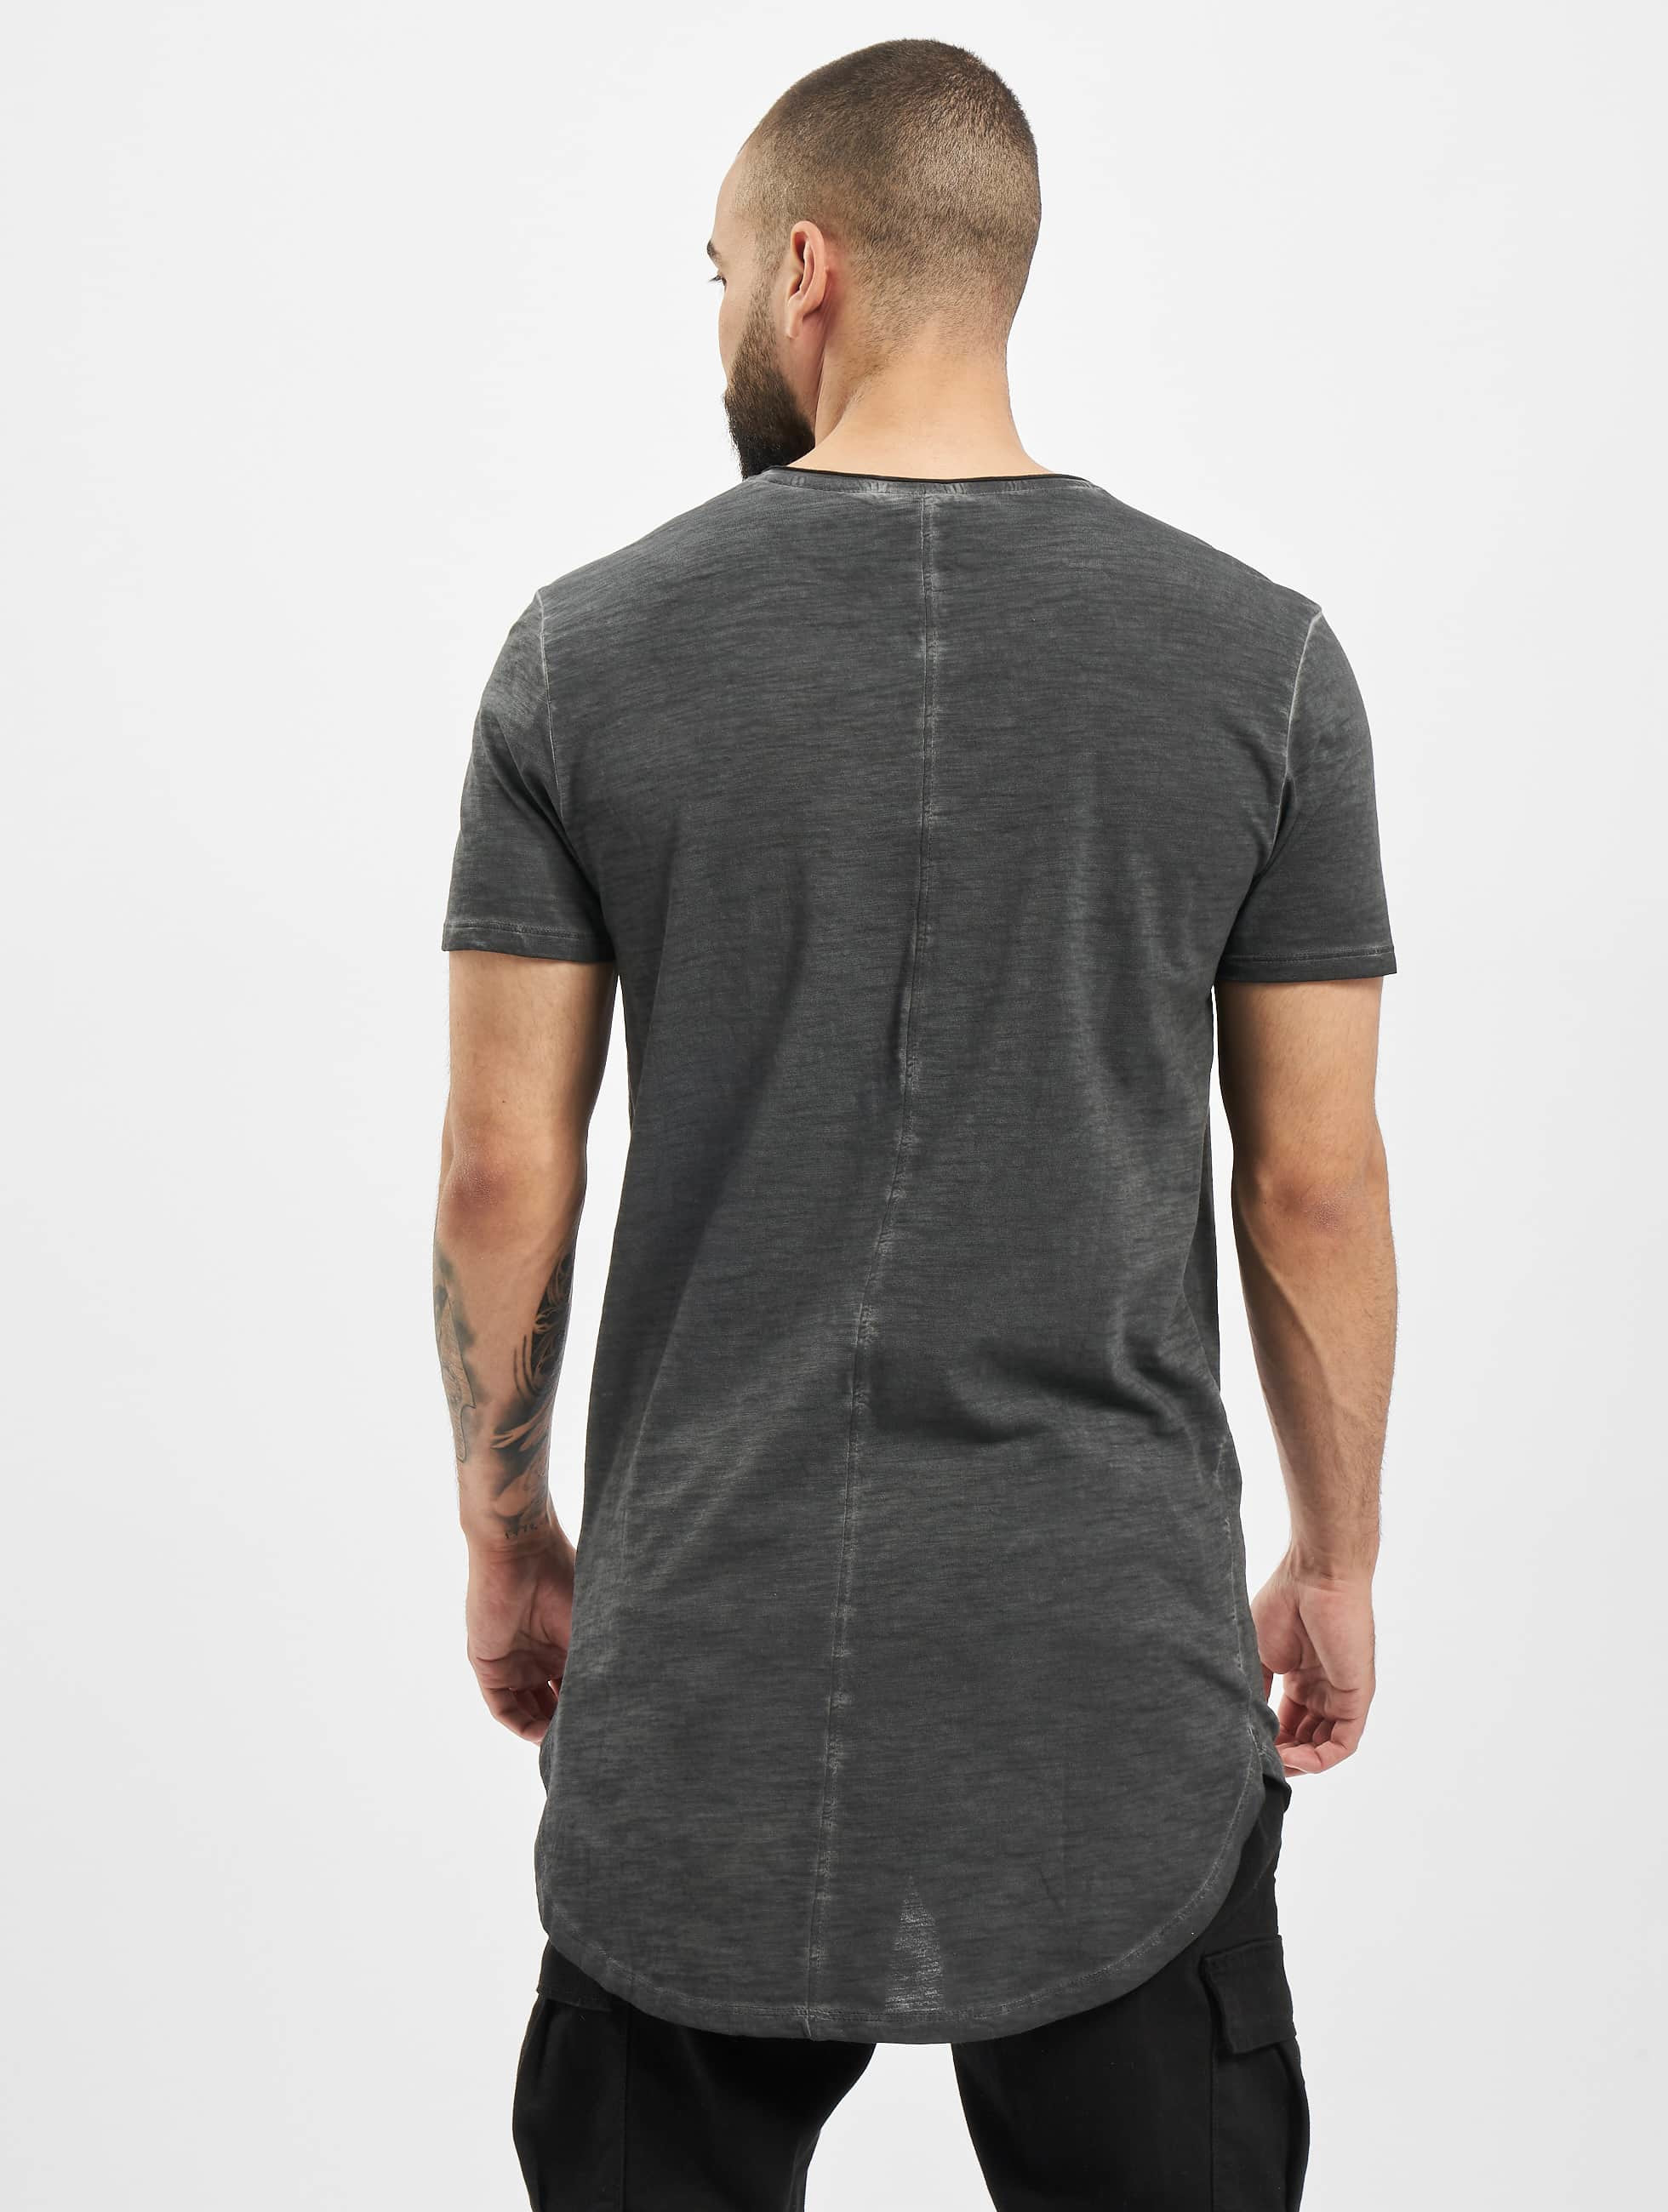 Urban Classics Tall Tees Long Back Shaped Spray Dye grigio